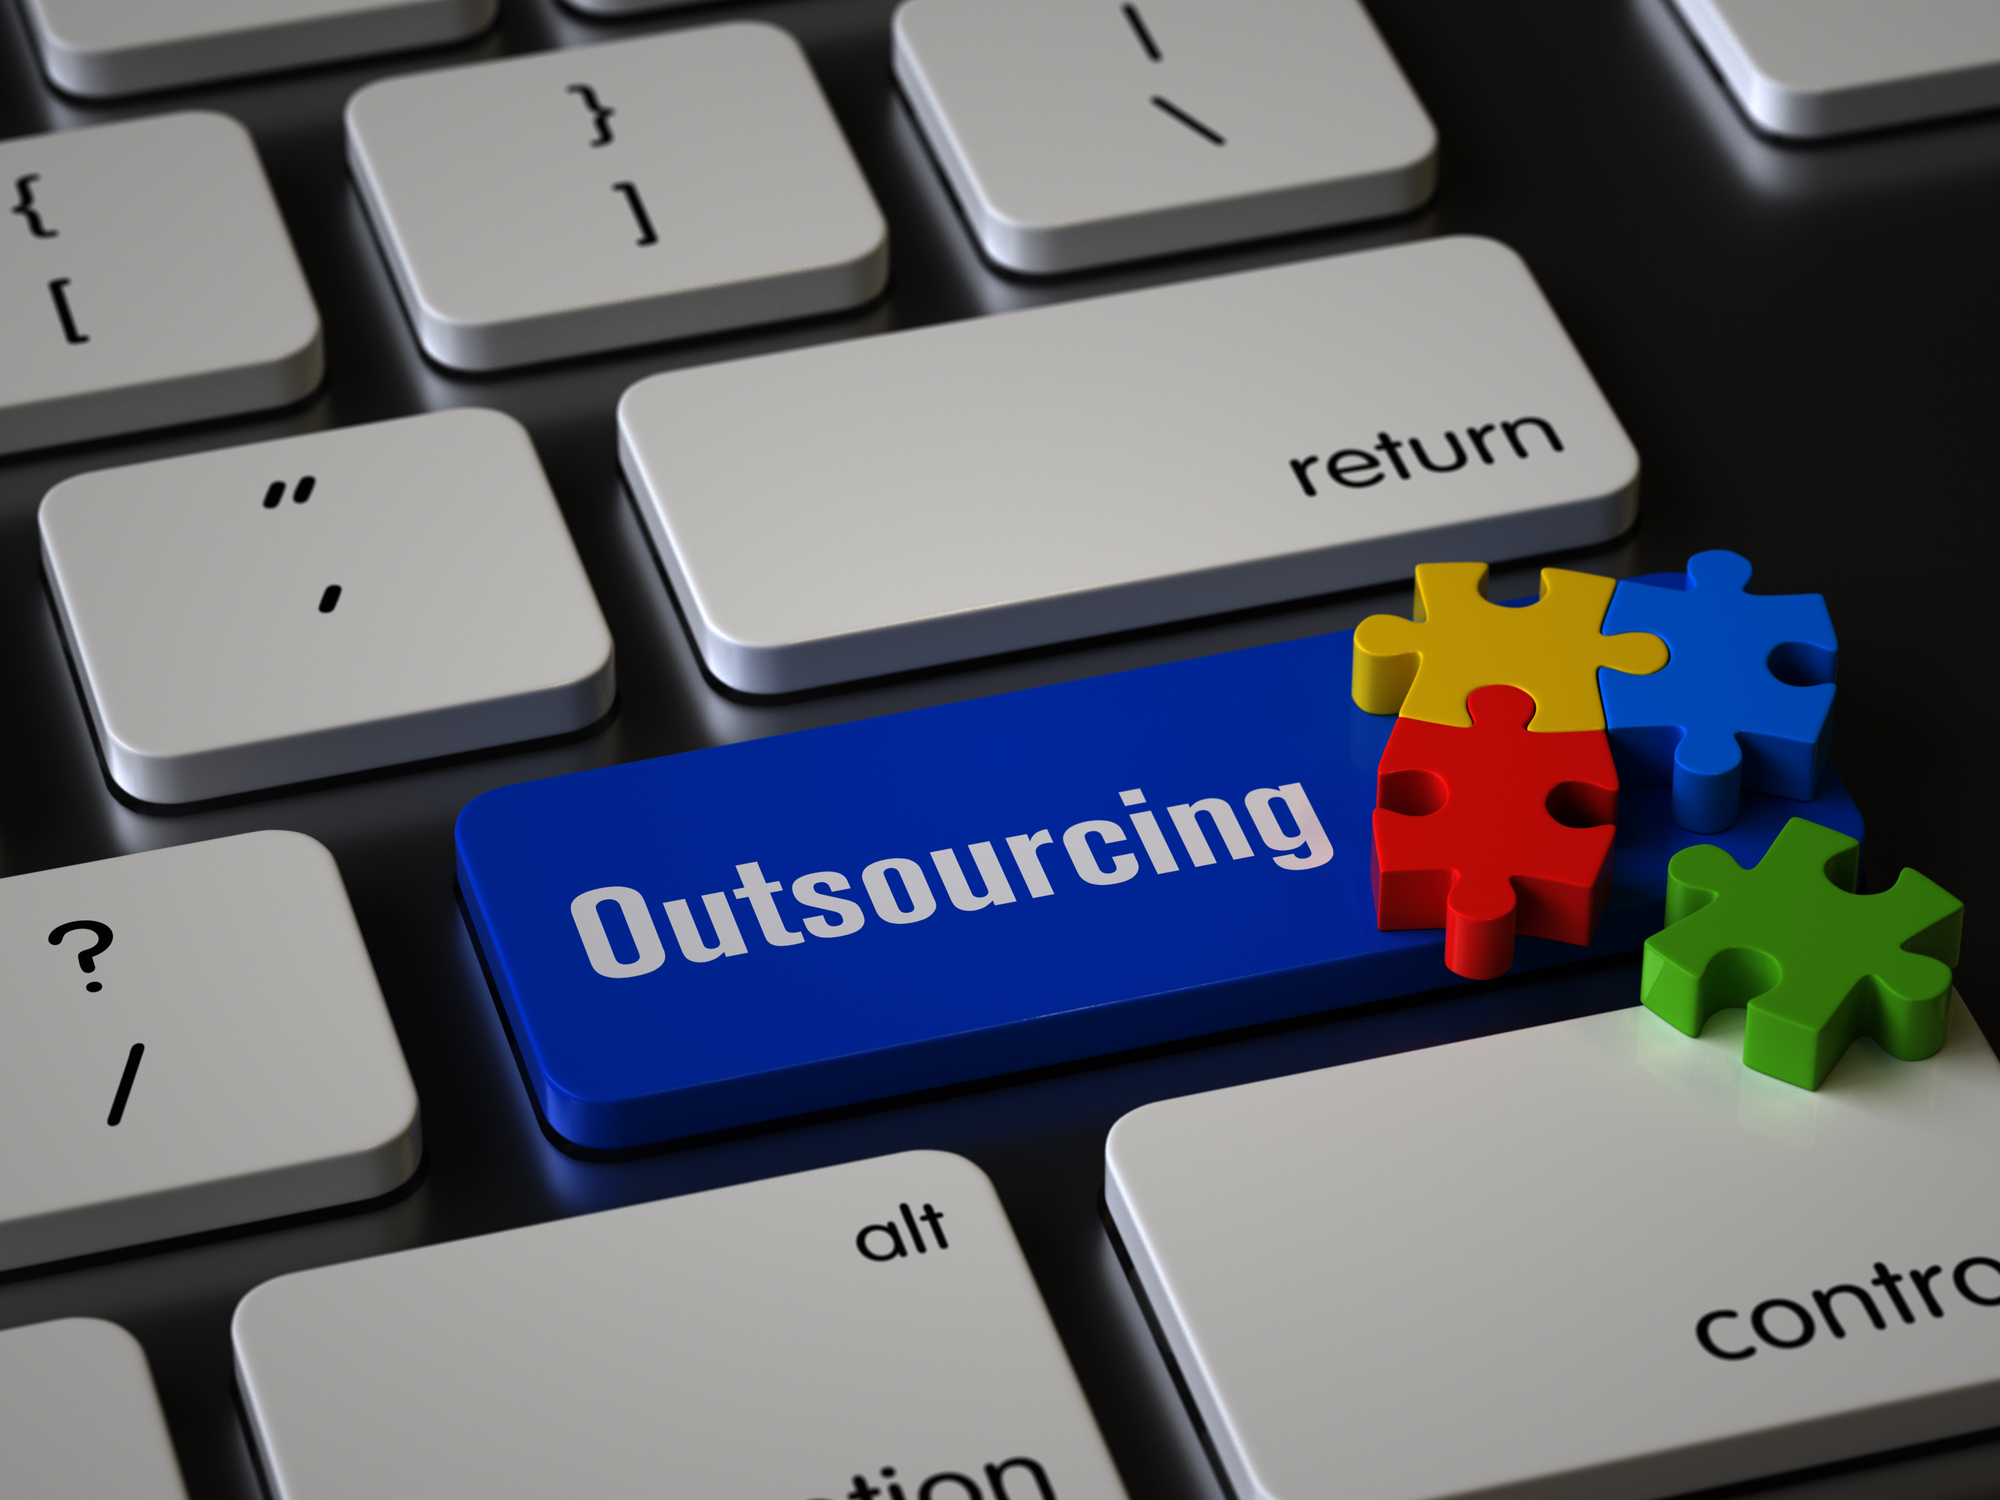 outsourcing-web-design-everything-you-need-to-know